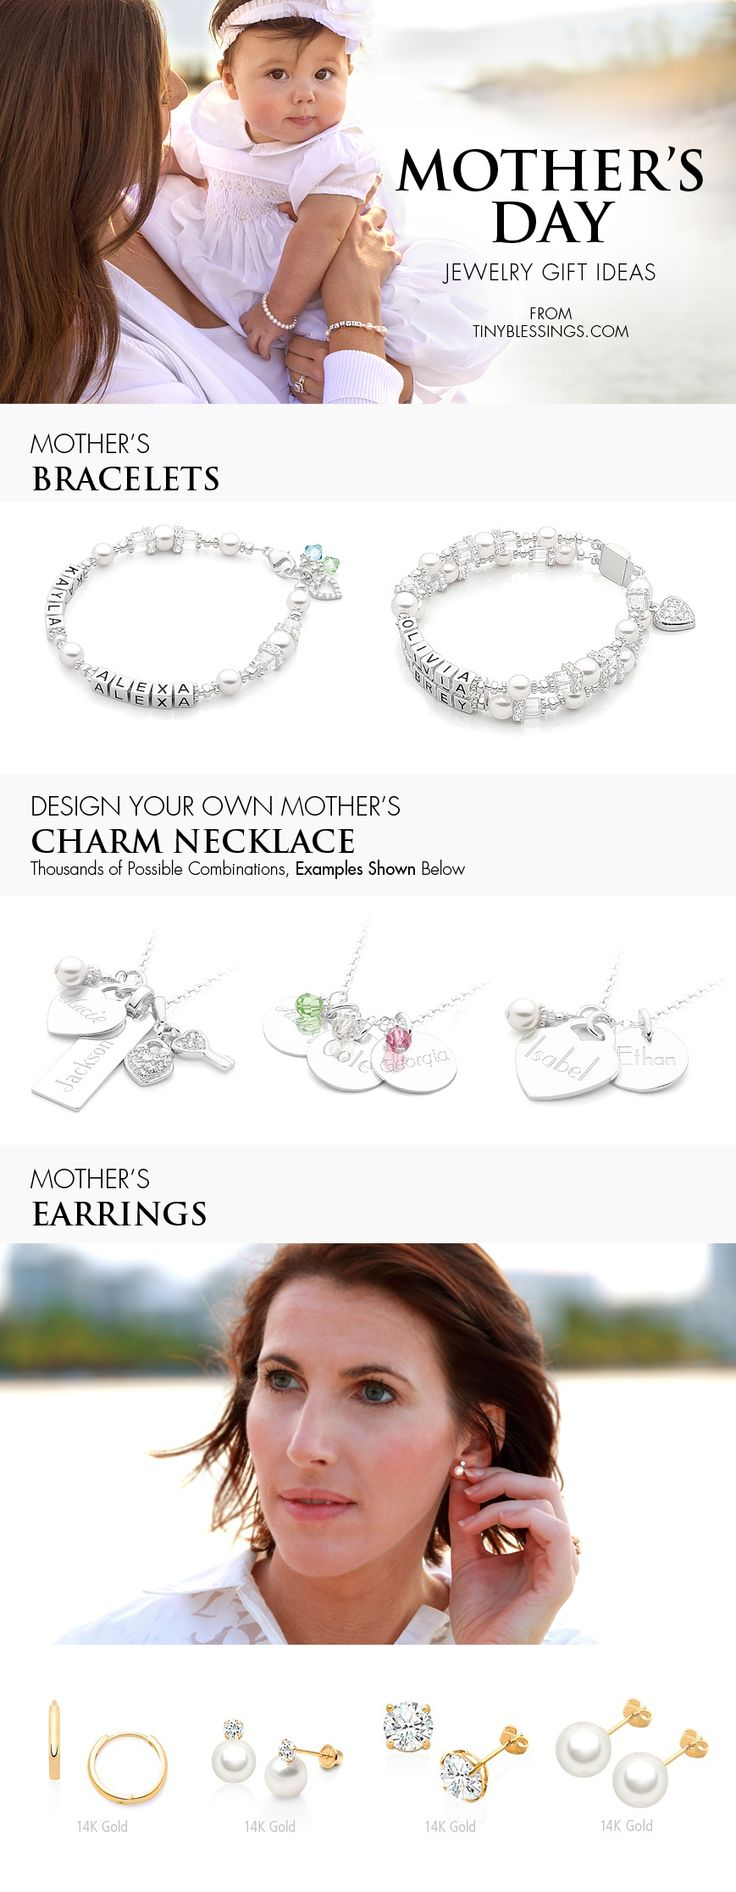 Beautiful, Meaningful Mother's Day Gift Ideas. | Mother's ...